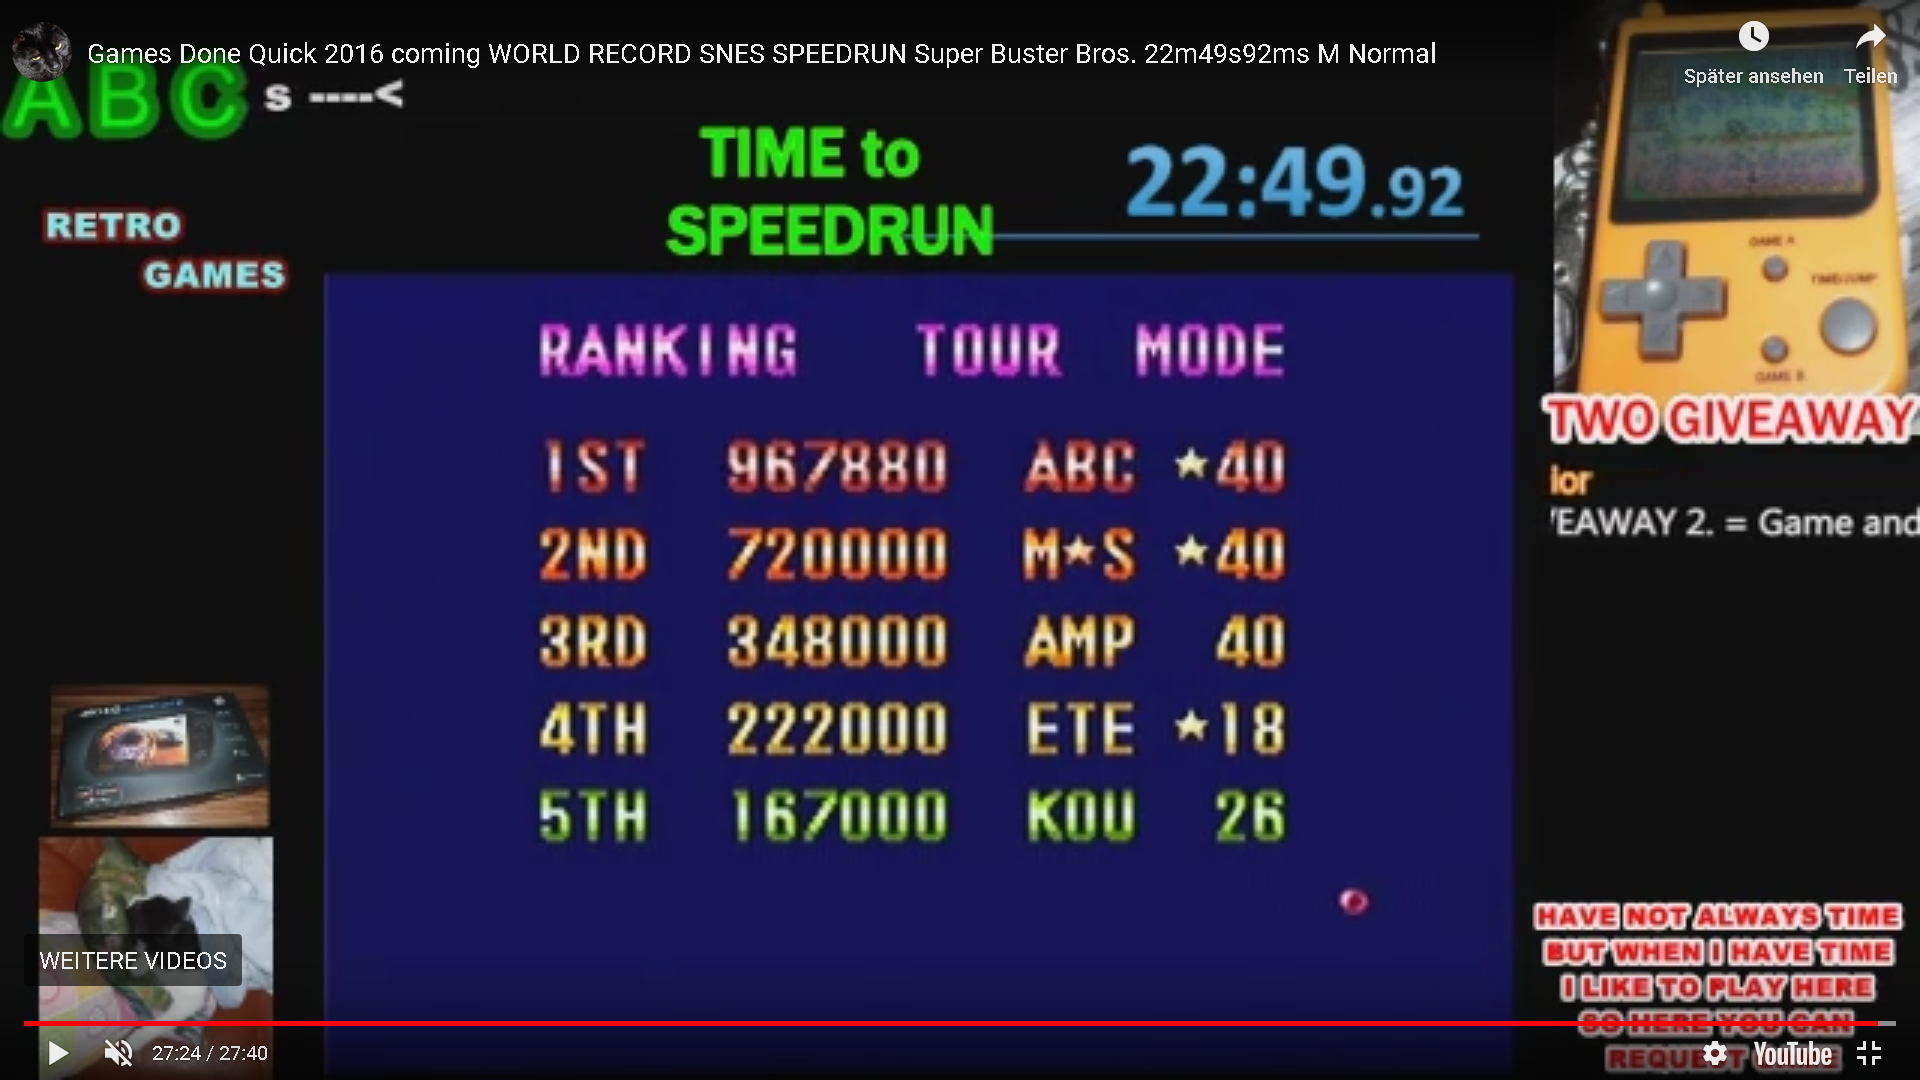 ArcadePlayerABC: Super Buster Bros: Tour Mode [Normal] (SNES/Super Famicom Emulated) 967,880 points on 2019-12-16 07:06:22